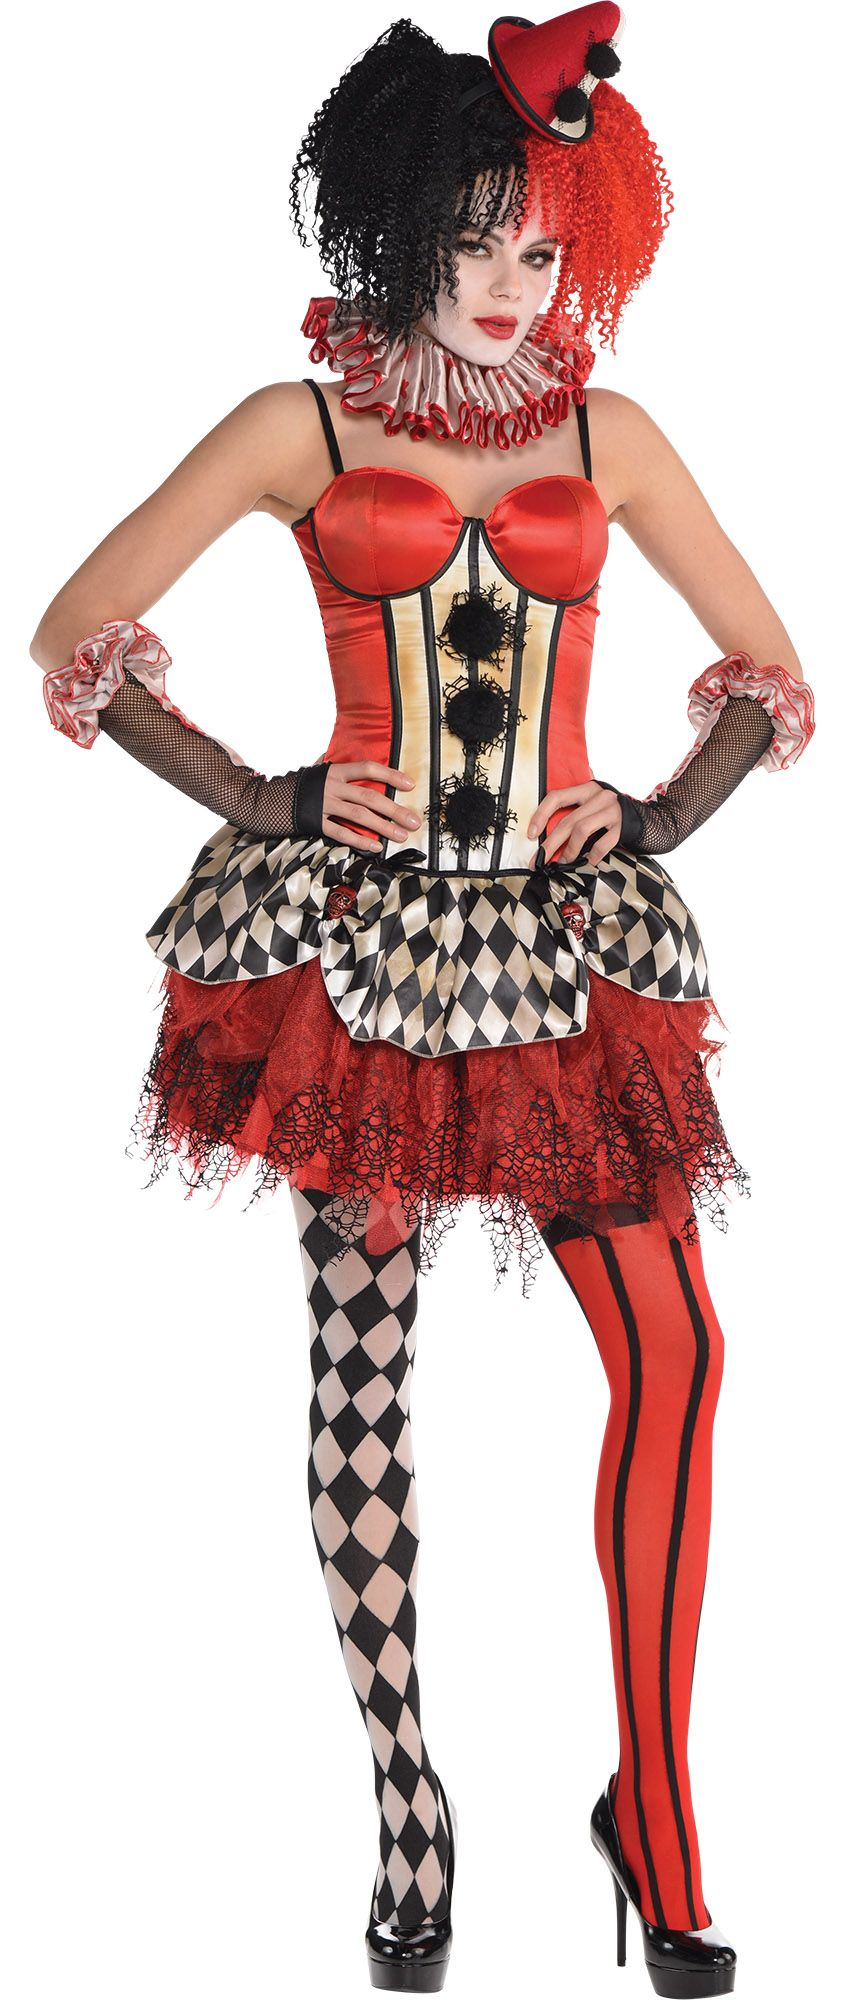 Create Your Look - Female Freak Show Clown